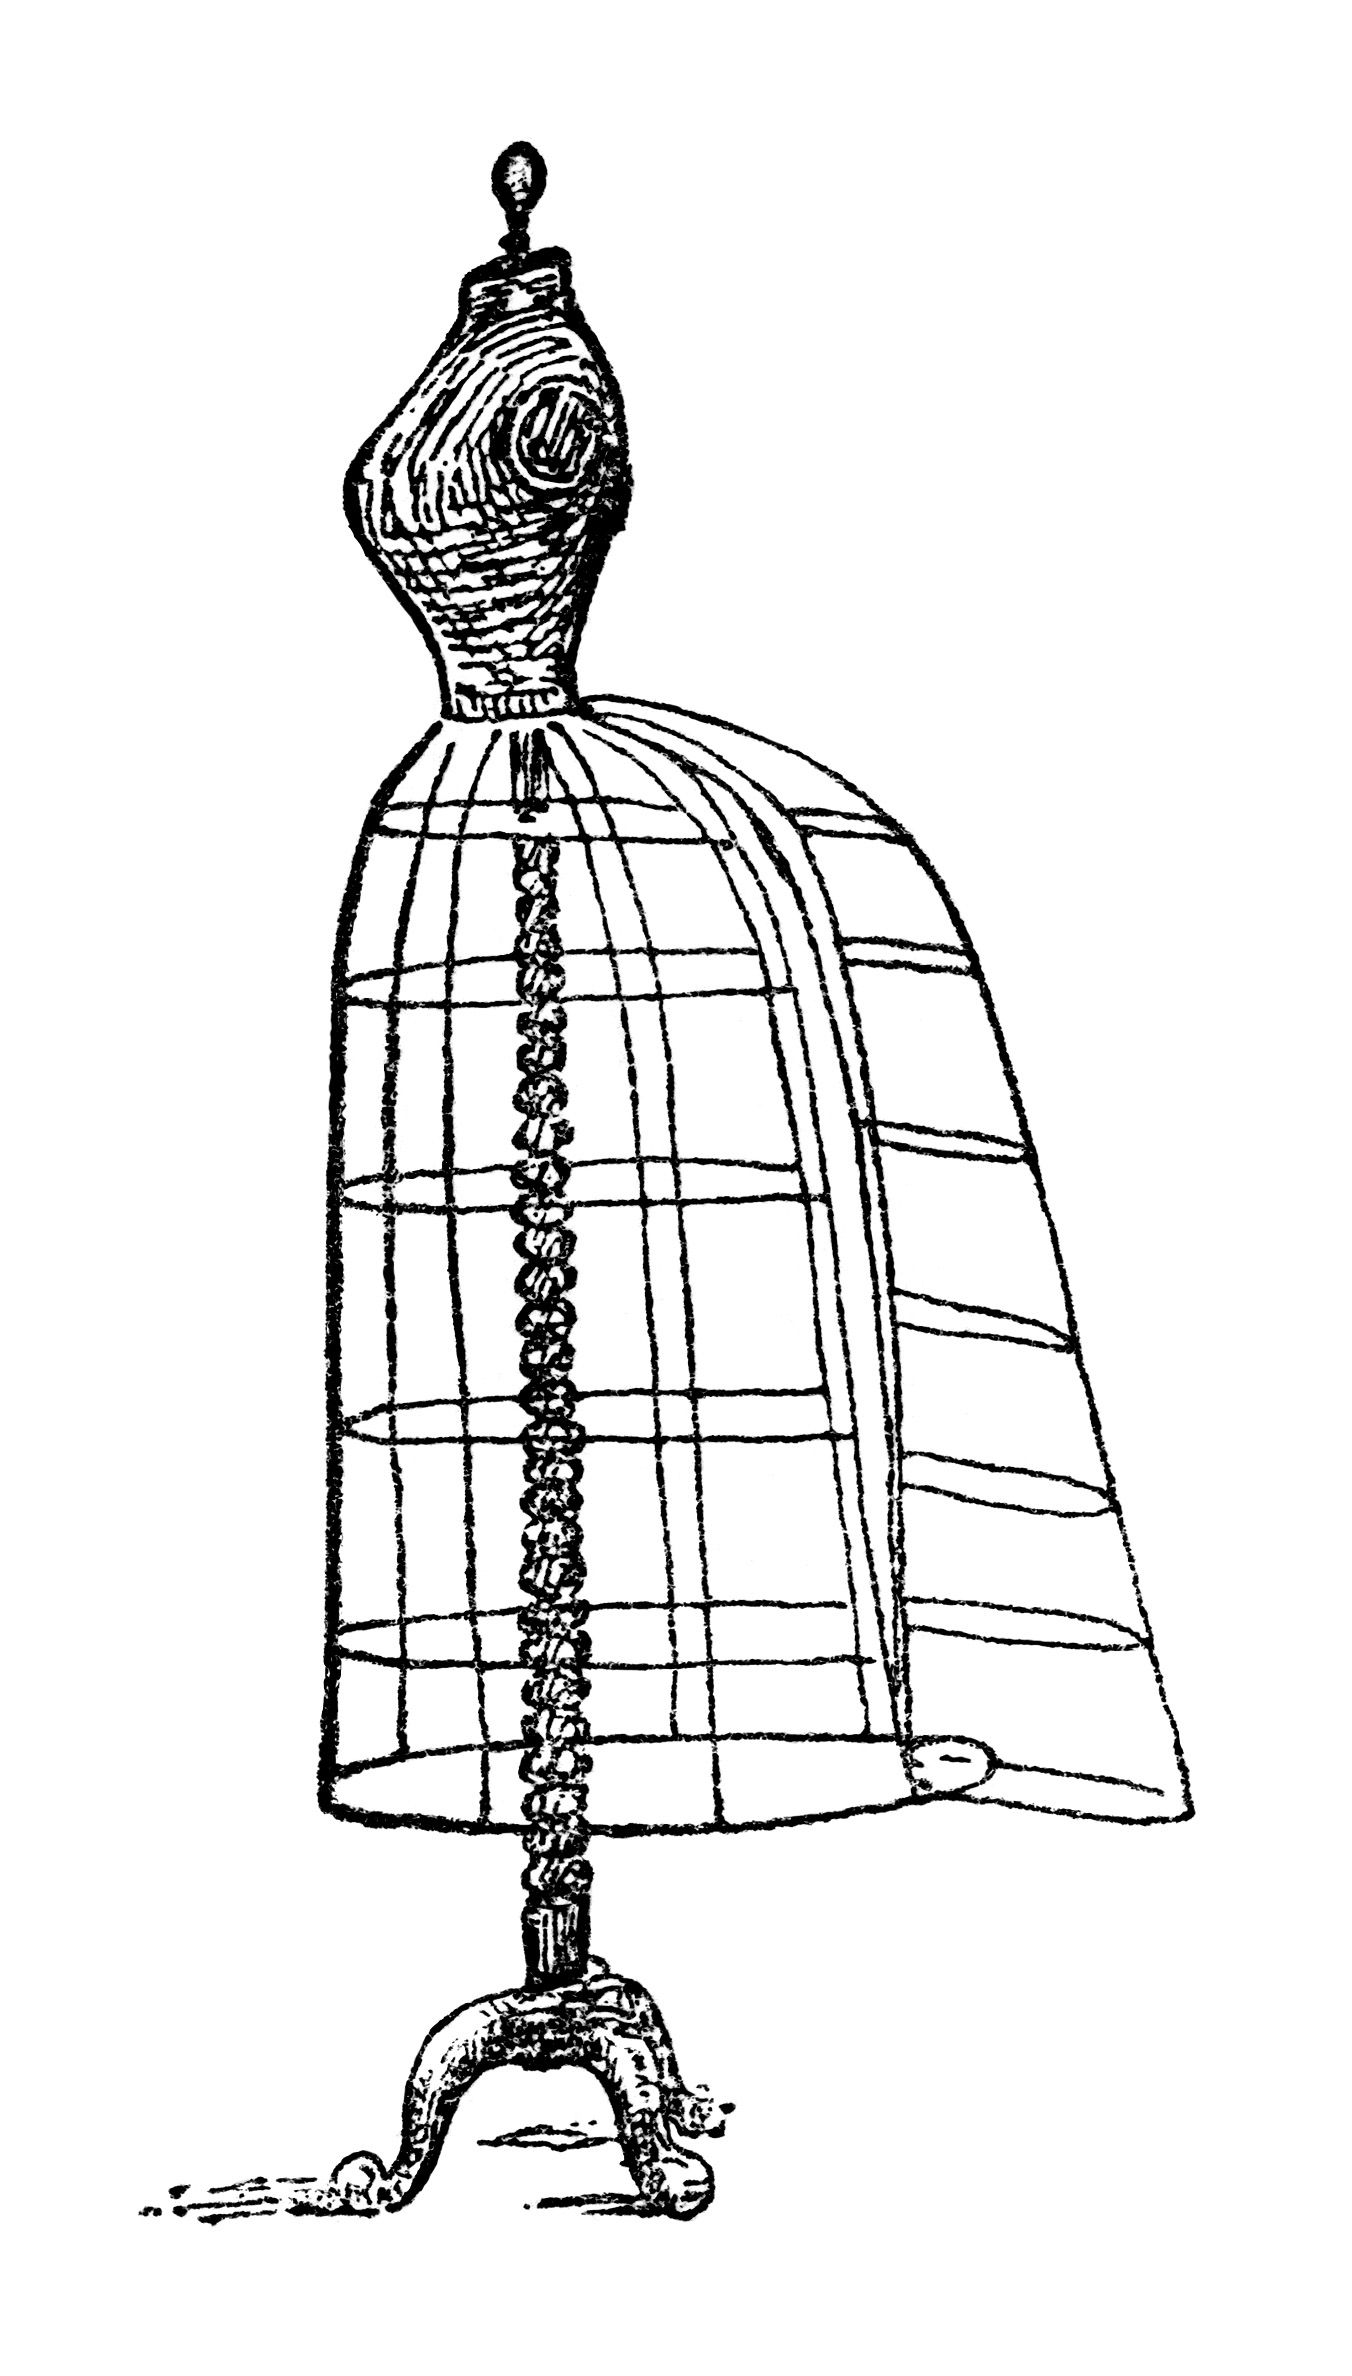 hight resolution of sewing machine clip art black and white sewing clip art black and white clipart wire dress form illustration